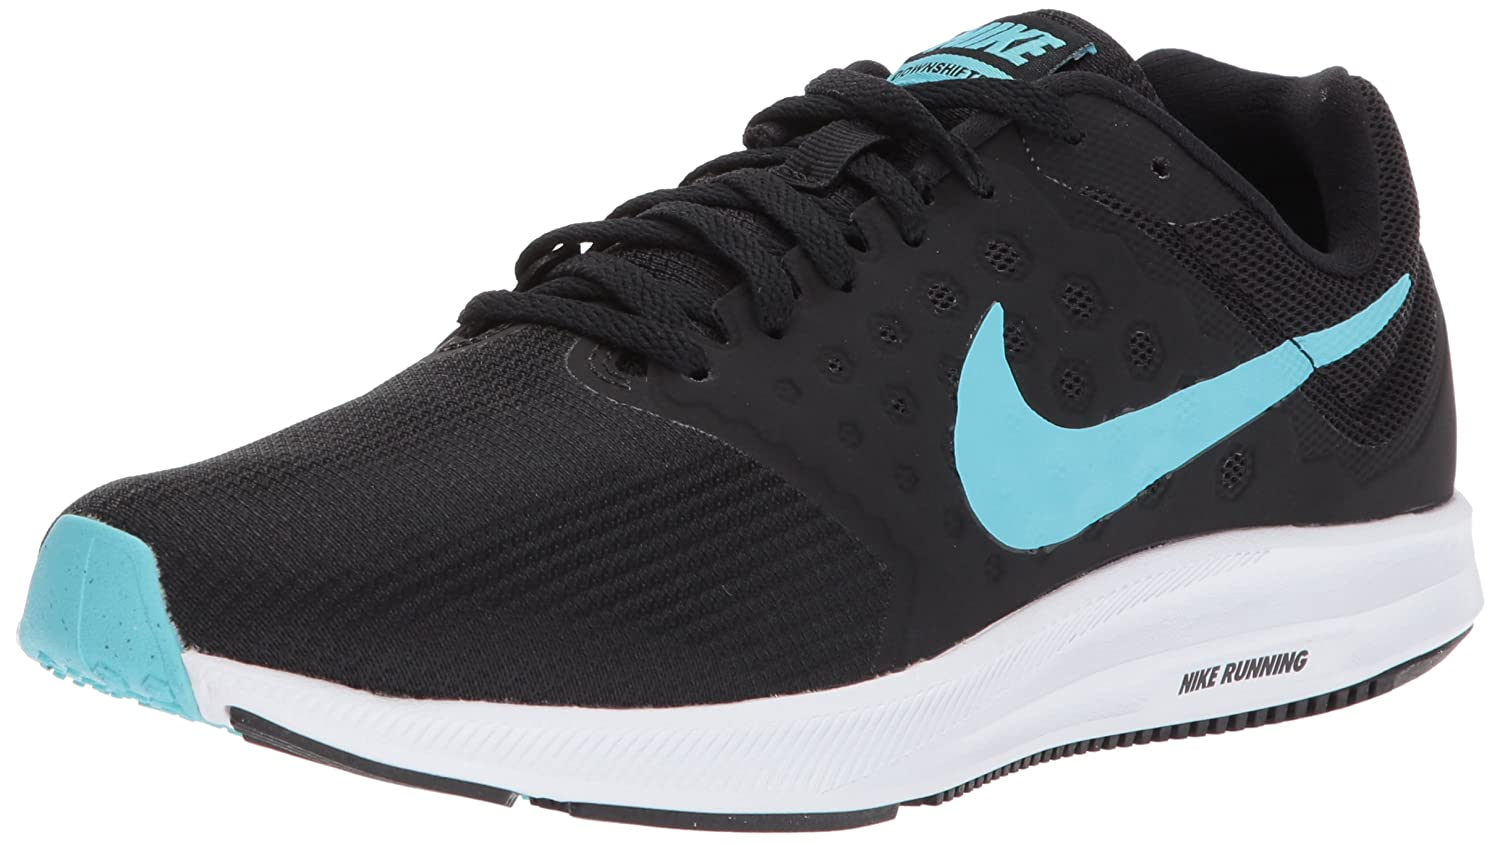 NIKE Women's Downshifter 7 B06WLMX789 10 B(M) US|Black/Polarized Blue-white